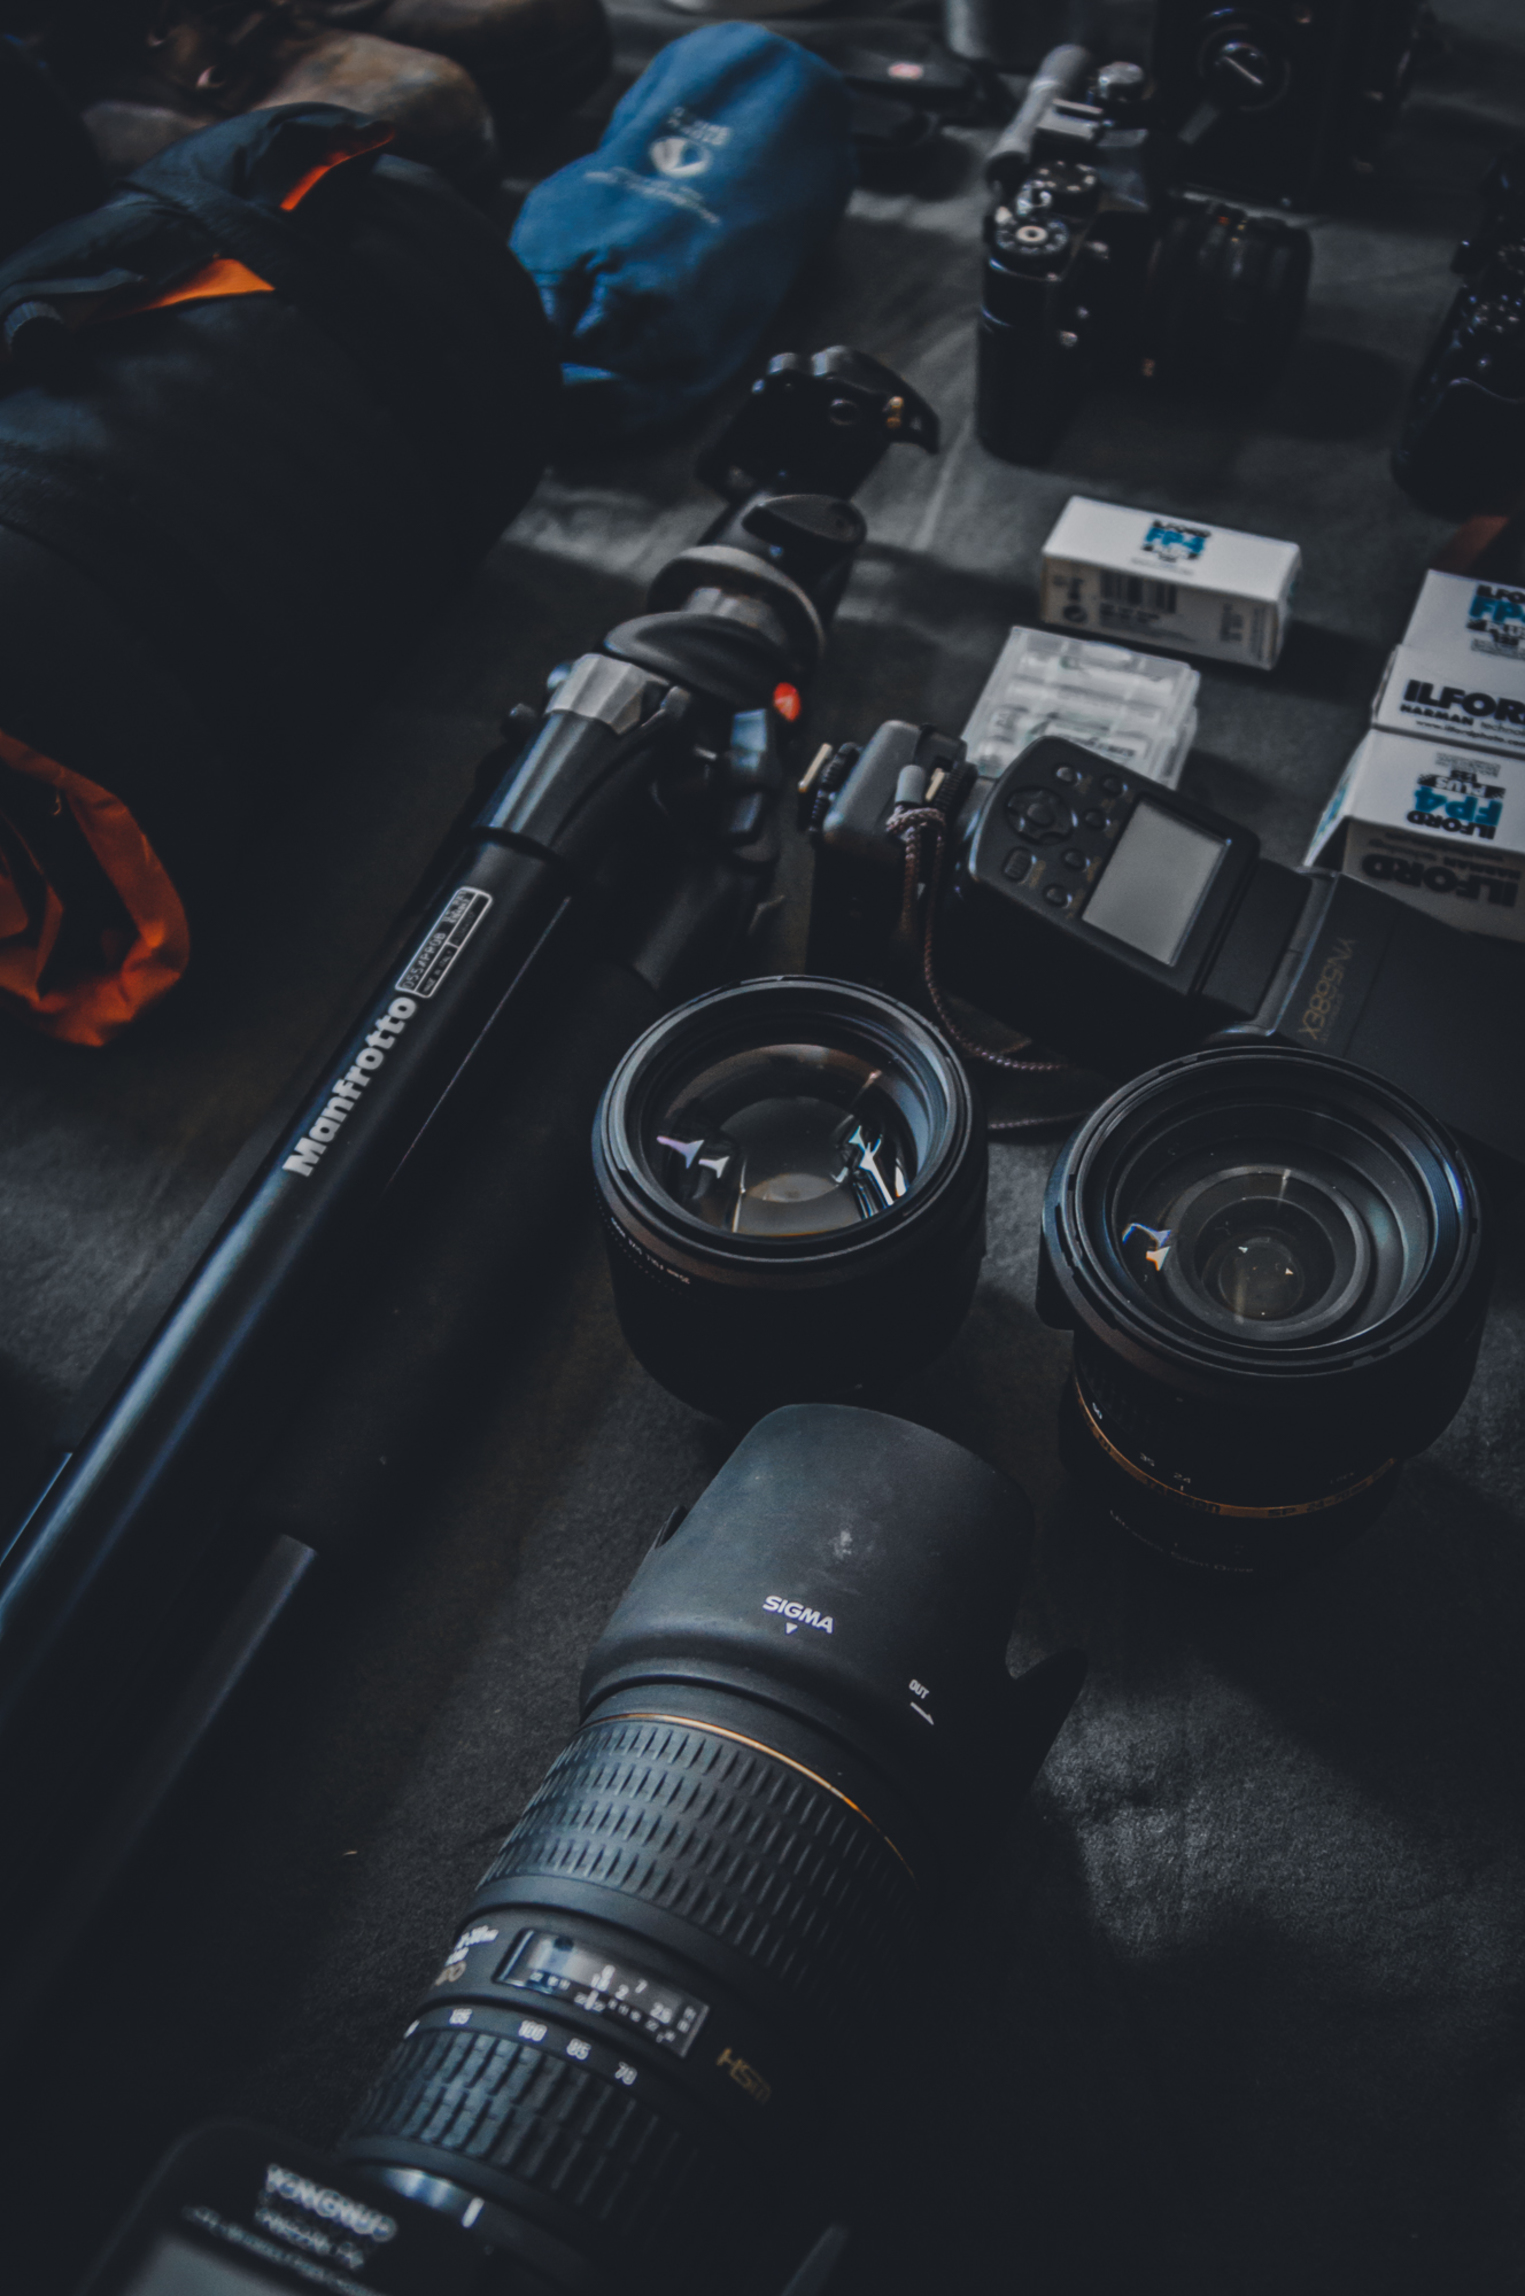 Stylish Events by Lisa Camera Gear